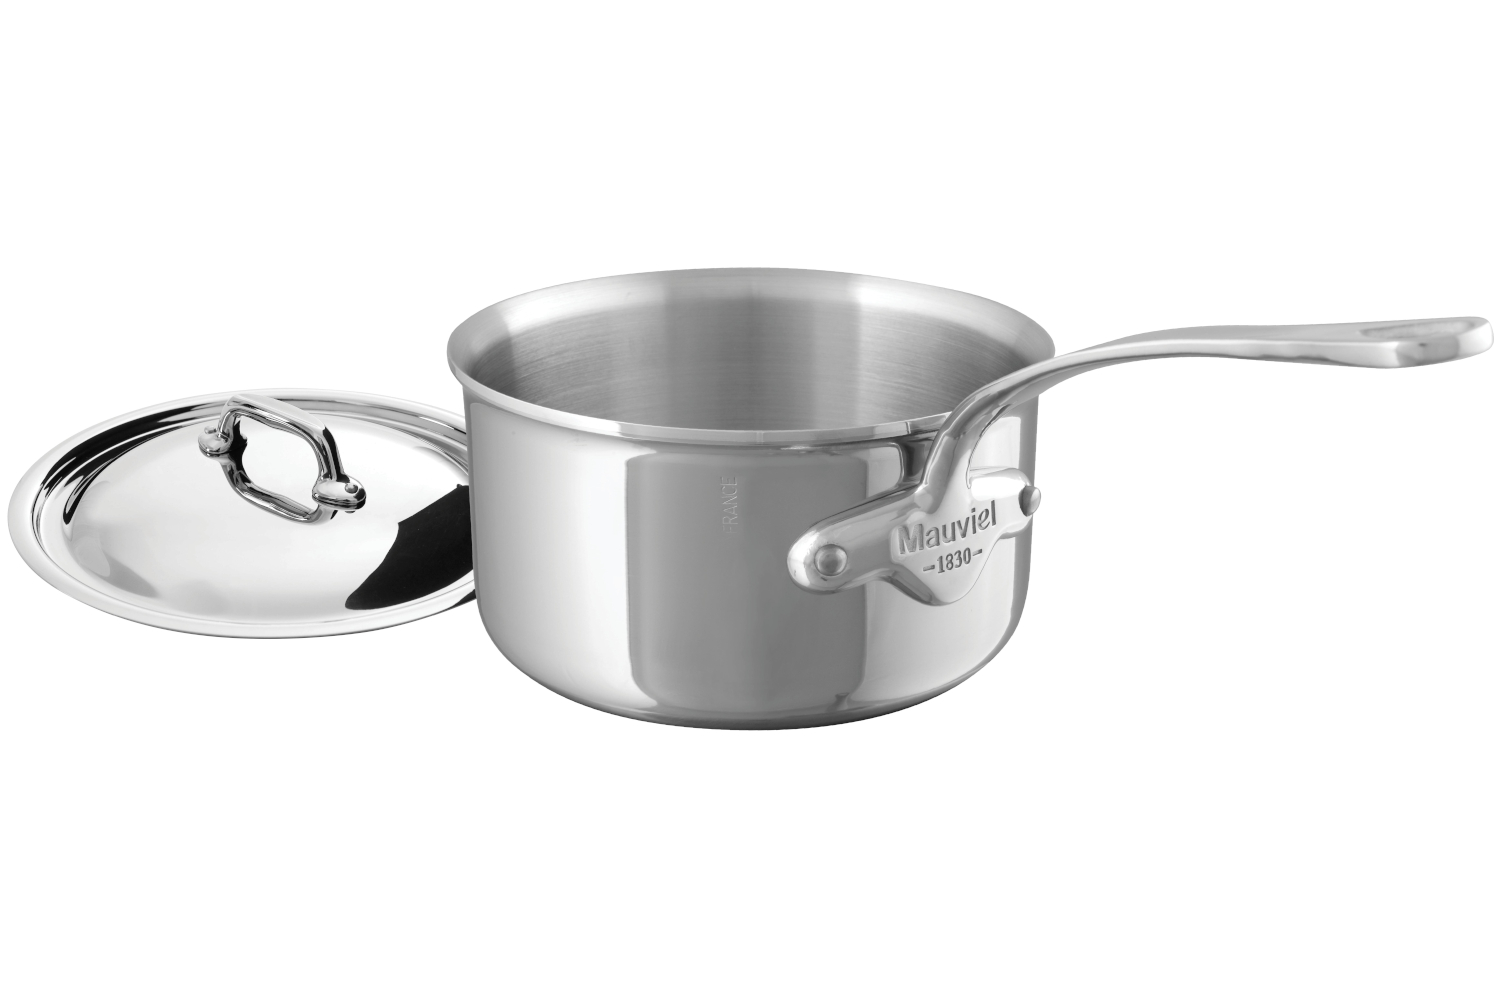 Mauviel M'cook Stainless Steel 2.7 qt. Sauce Pan w/Lid